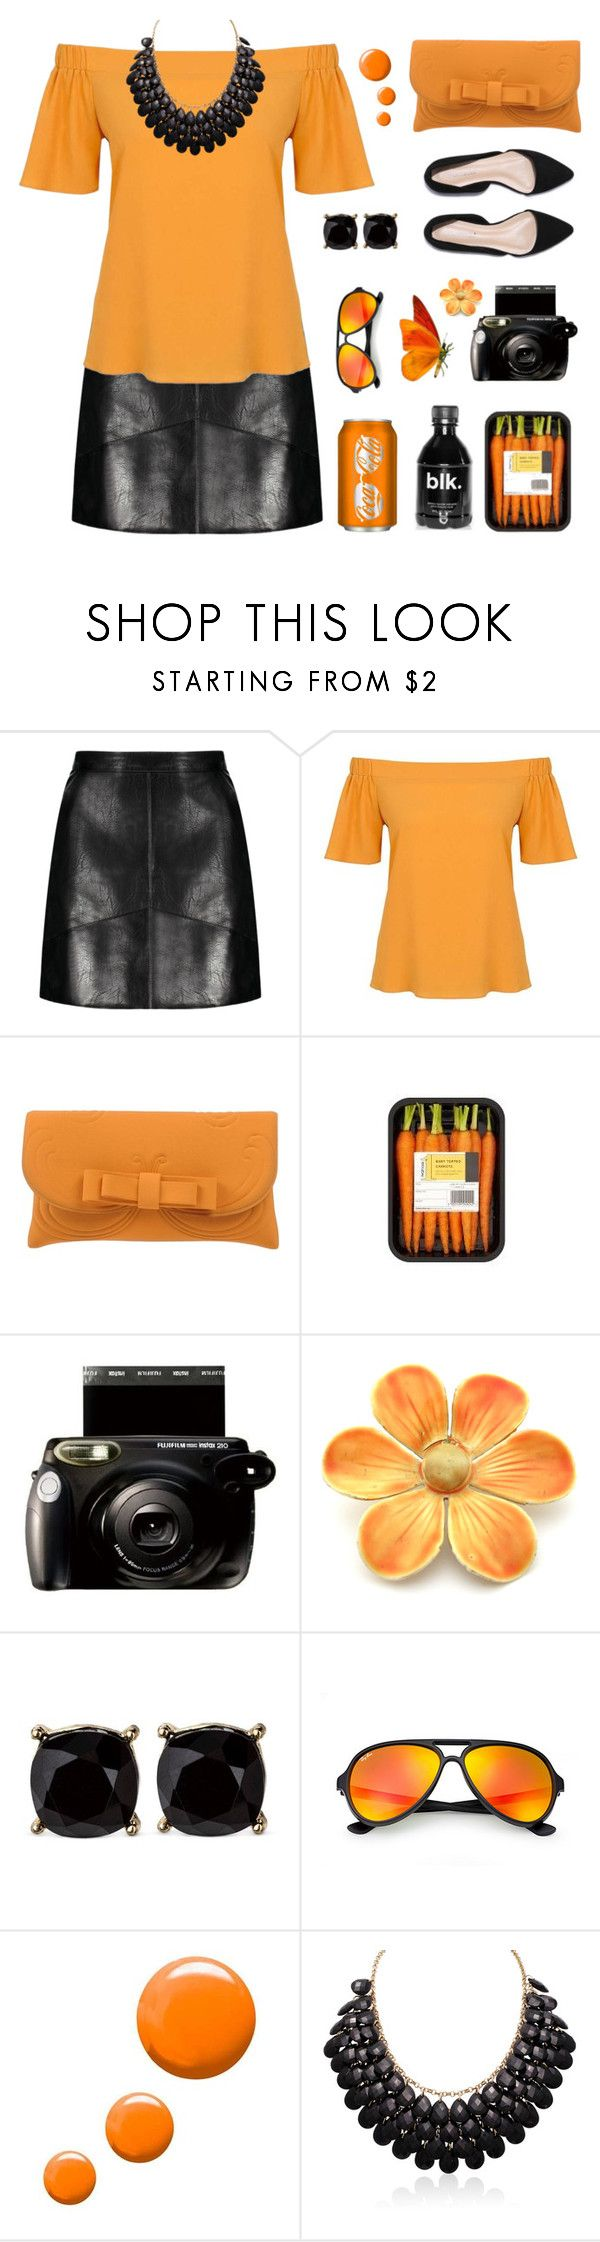 """Untitled #1976"" by tinkertot ❤ liked on Polyvore featuring Dorothy Perkins, La Fille Des Fleurs, Ray-Ban, Topshop and Adoriana"